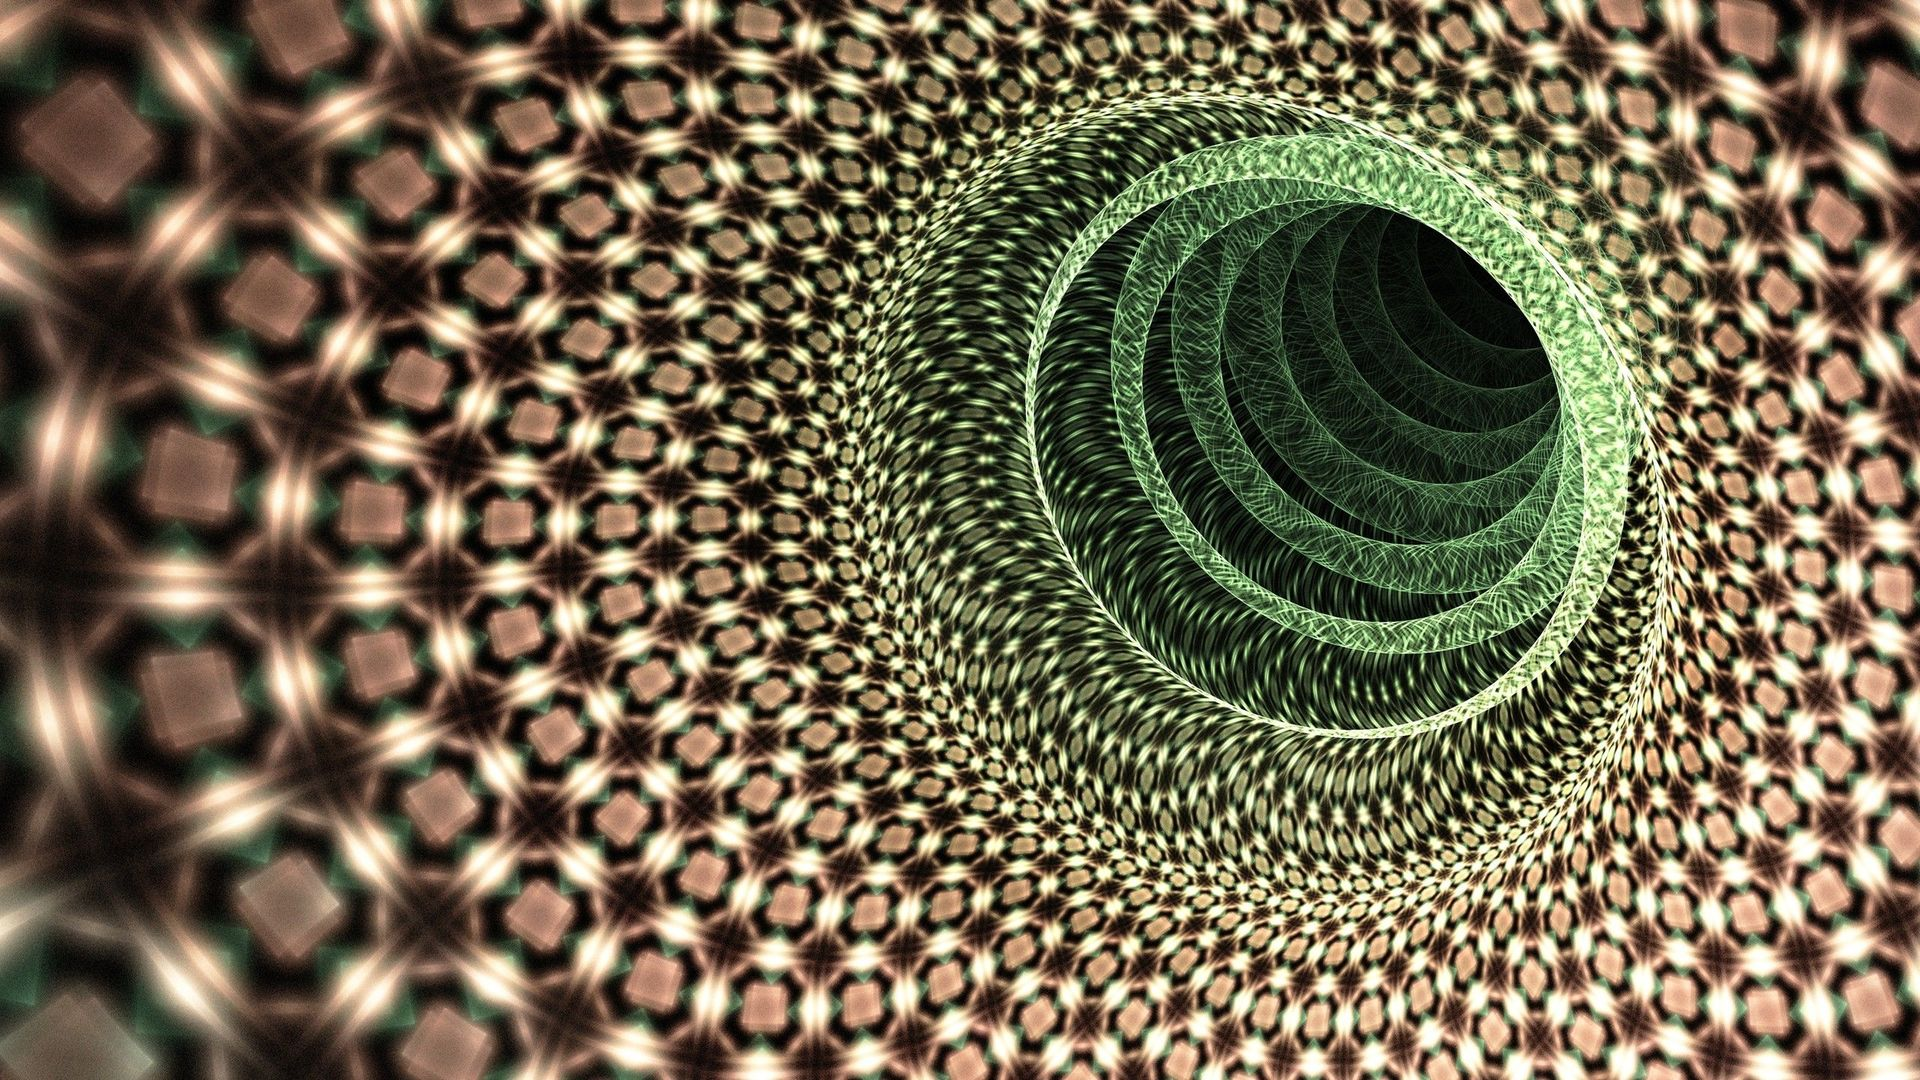 Hd Tube 3d Pattern Inside Of A Tube Hd Wallpaper Hd Latest